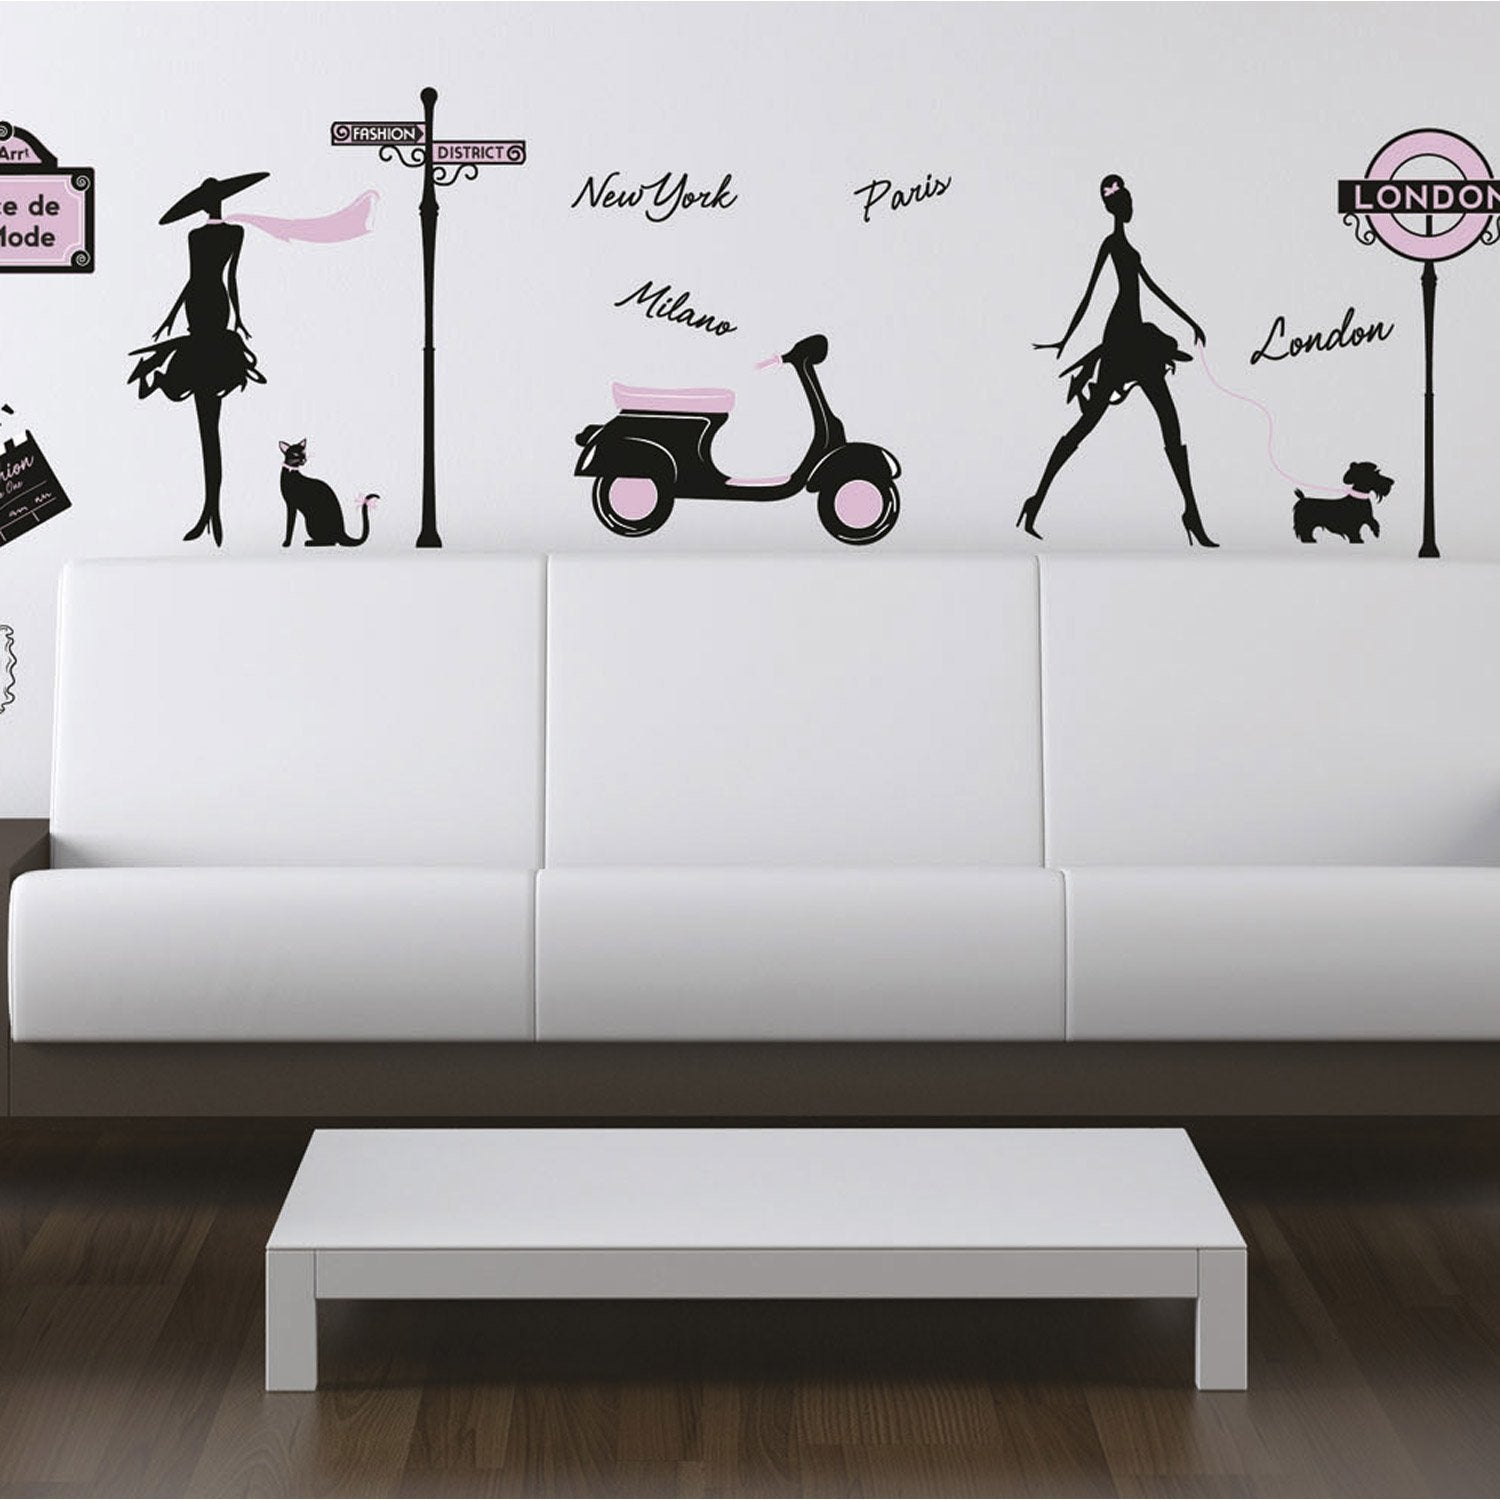 Sticker world fashion 50 cm x 70 cm leroy merlin - Stickers de porte leroy merlin ...